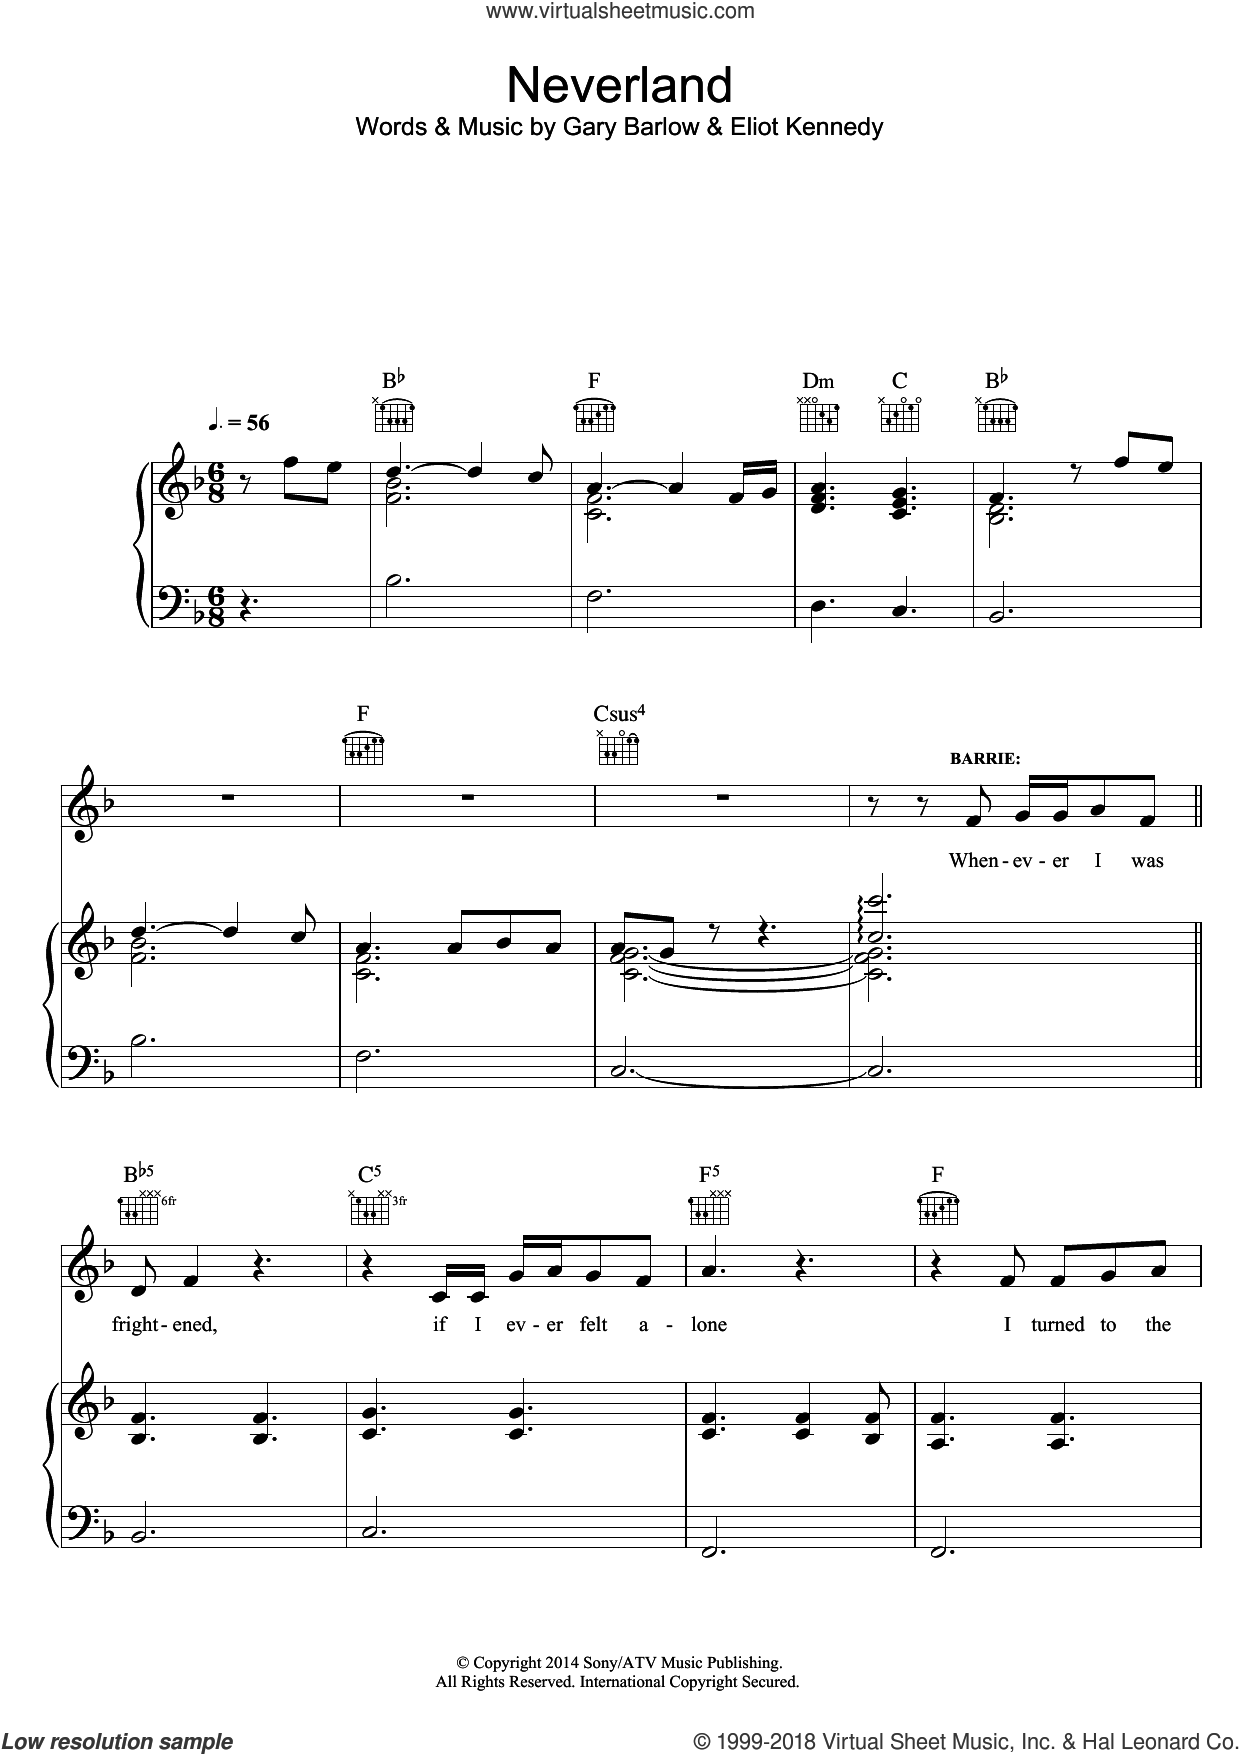 Neverland (from 'Finding Neverland') sheet music for voice, piano or guitar by Eliot Kennedy and Gary Barlow, intermediate skill level